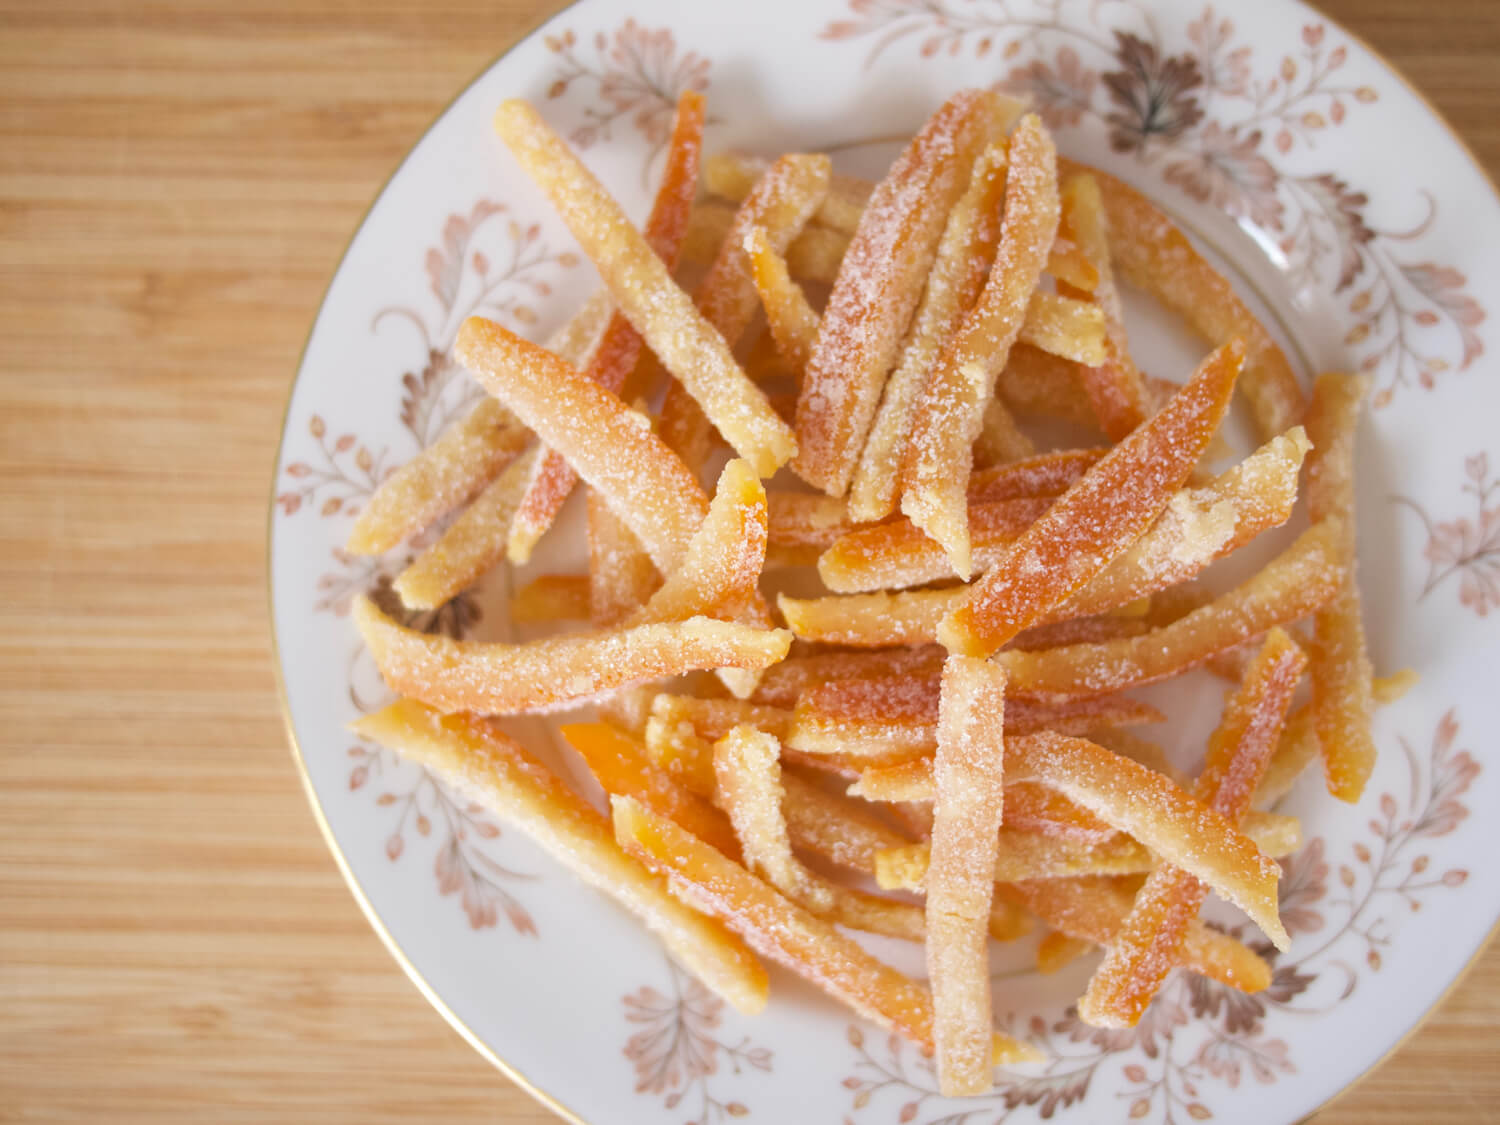 Spiced Candied Orange Peels